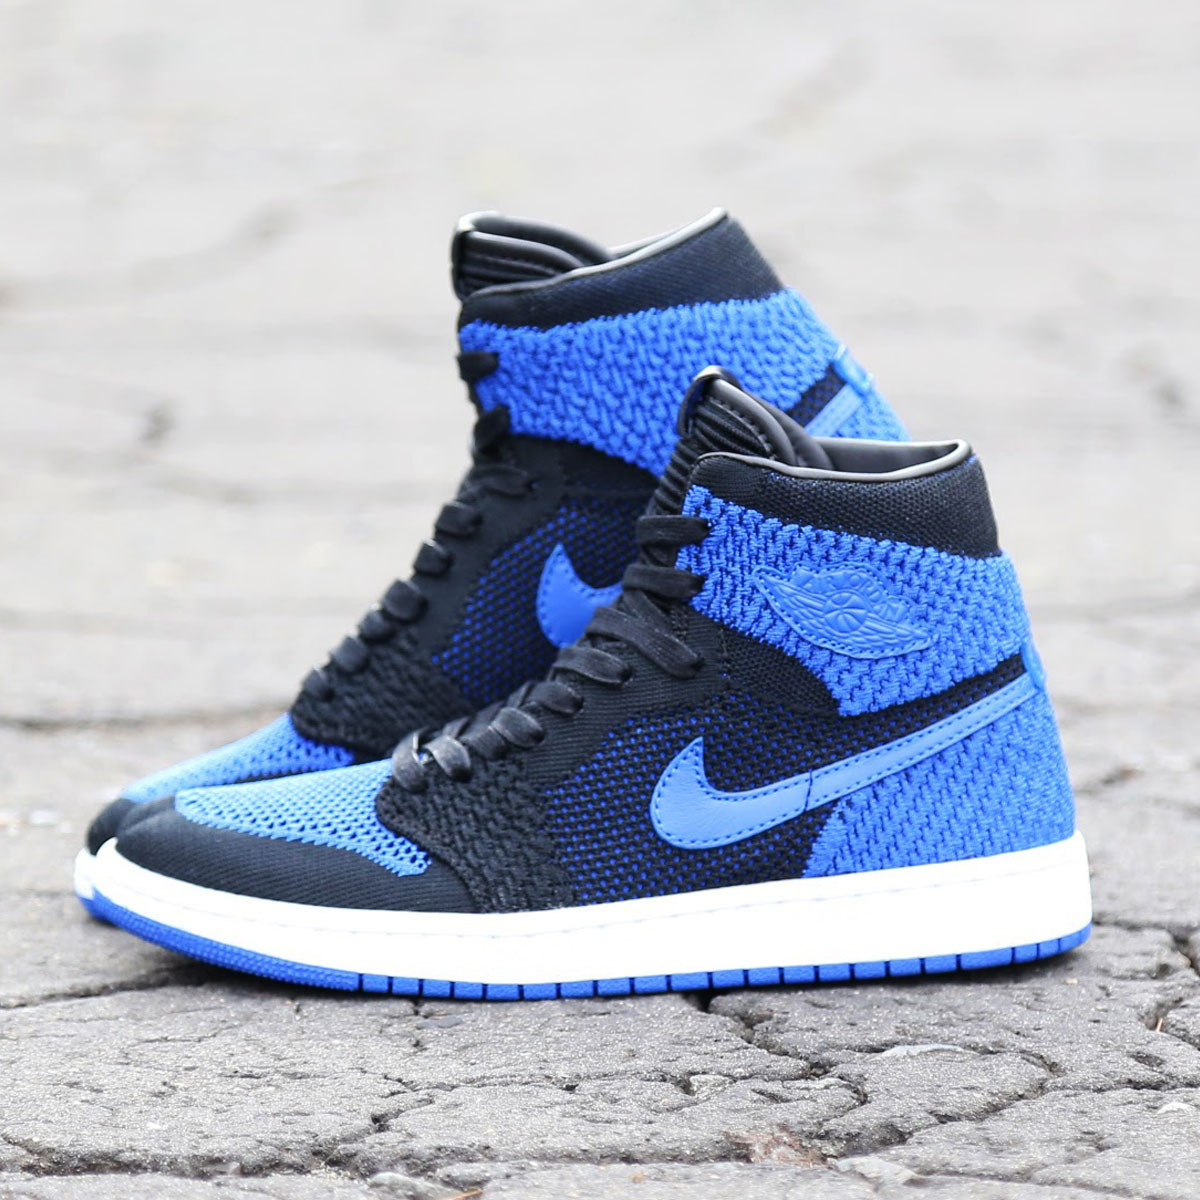 da482c65550 Air Jordan 1 who appeared in 1985 recorded totally new wind on a coat. As  series of Air Jordan is established, the designs using the best material at  the ...